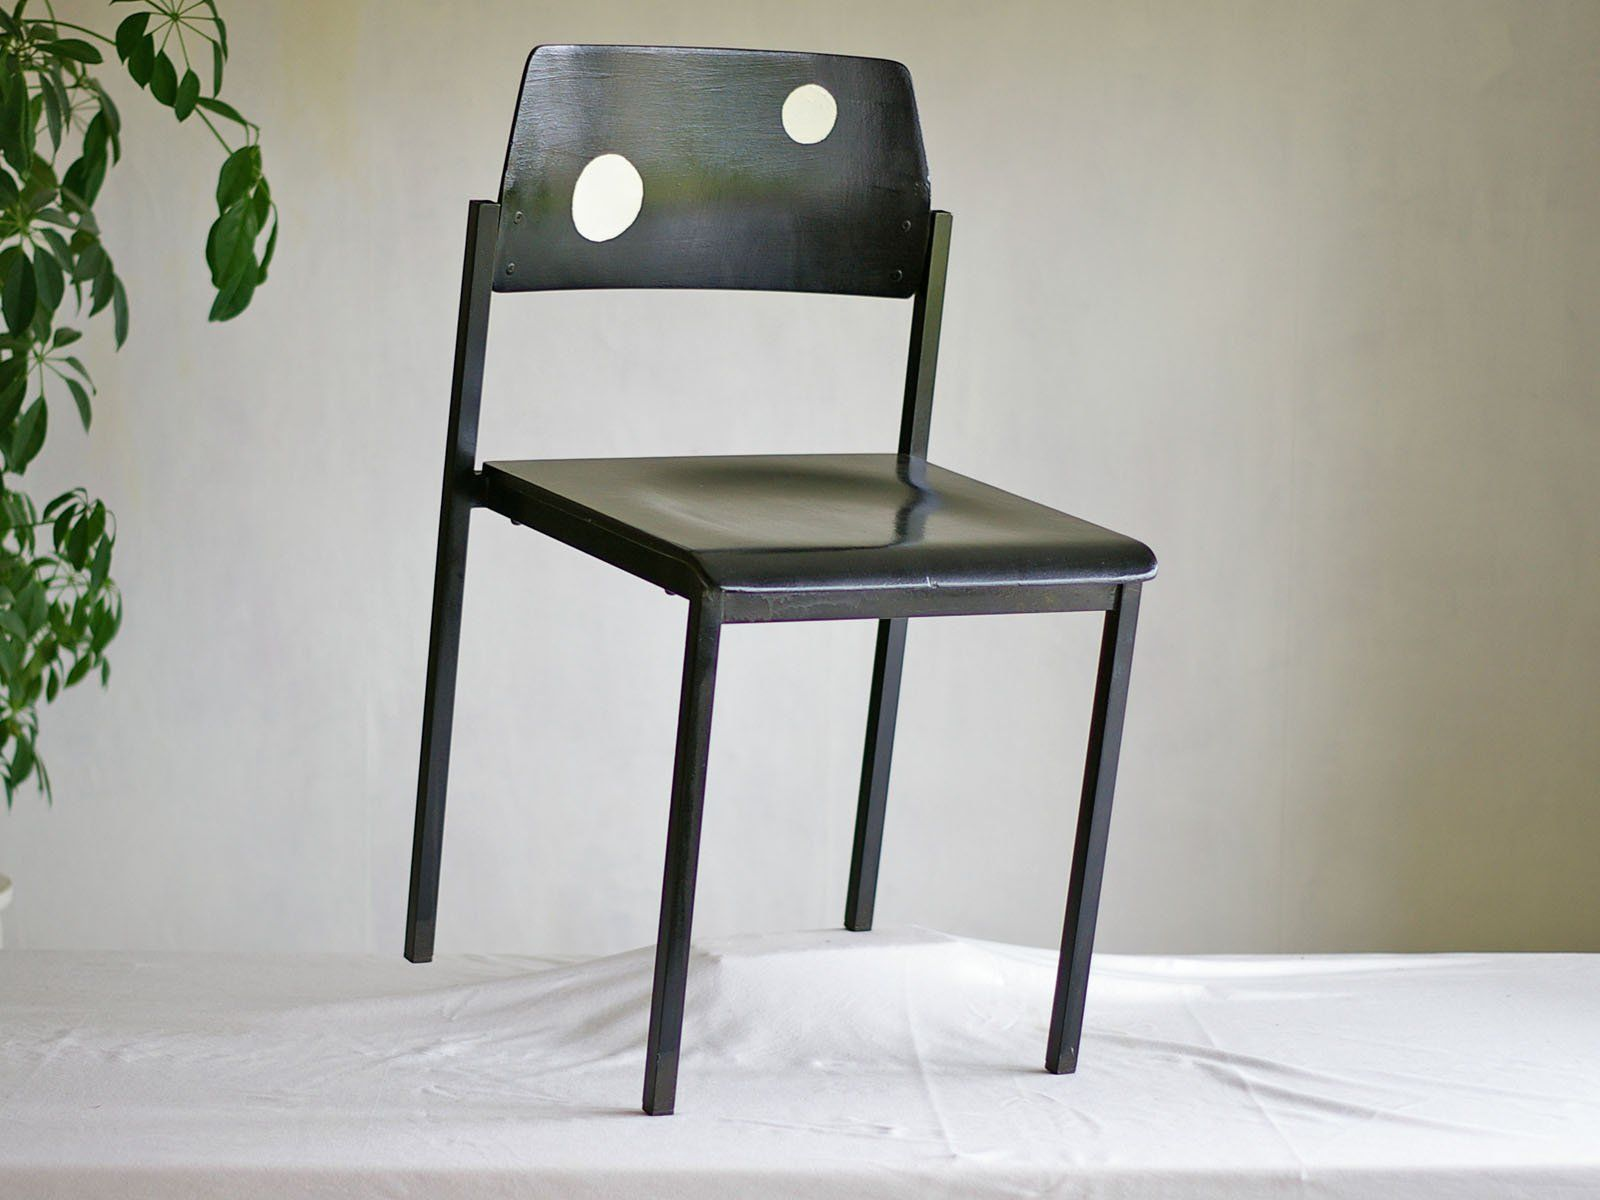 Wooden Chair With Metal Frame Black Chair Retro White Dots